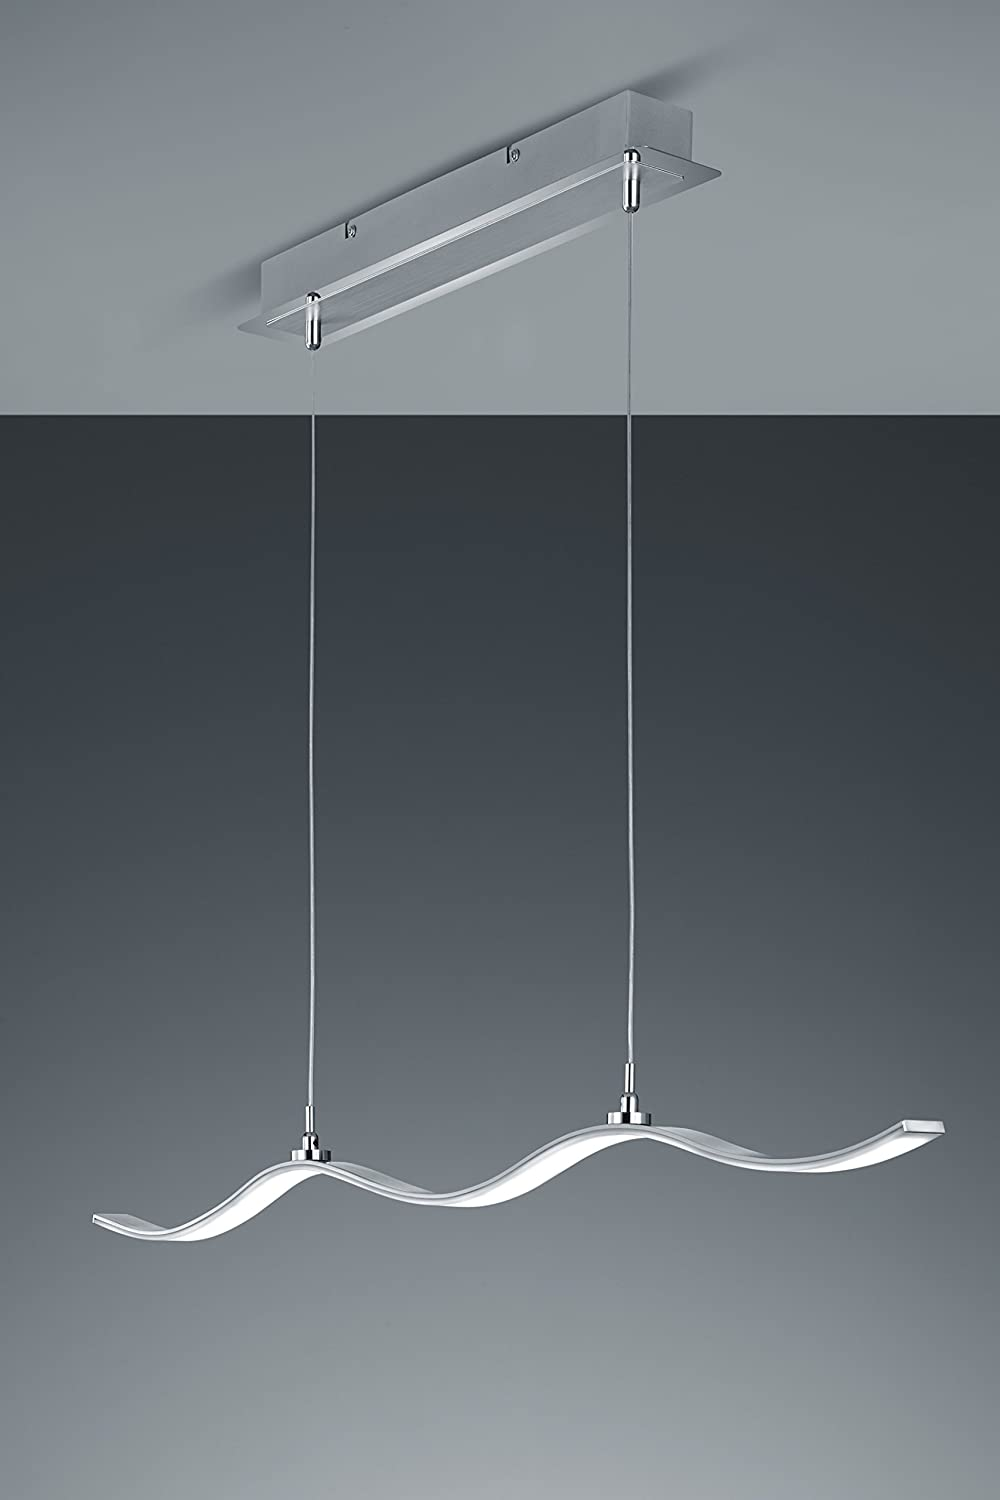 Trio Lighting Lámpara de mesa, 10 W: Amazon.es: Iluminación